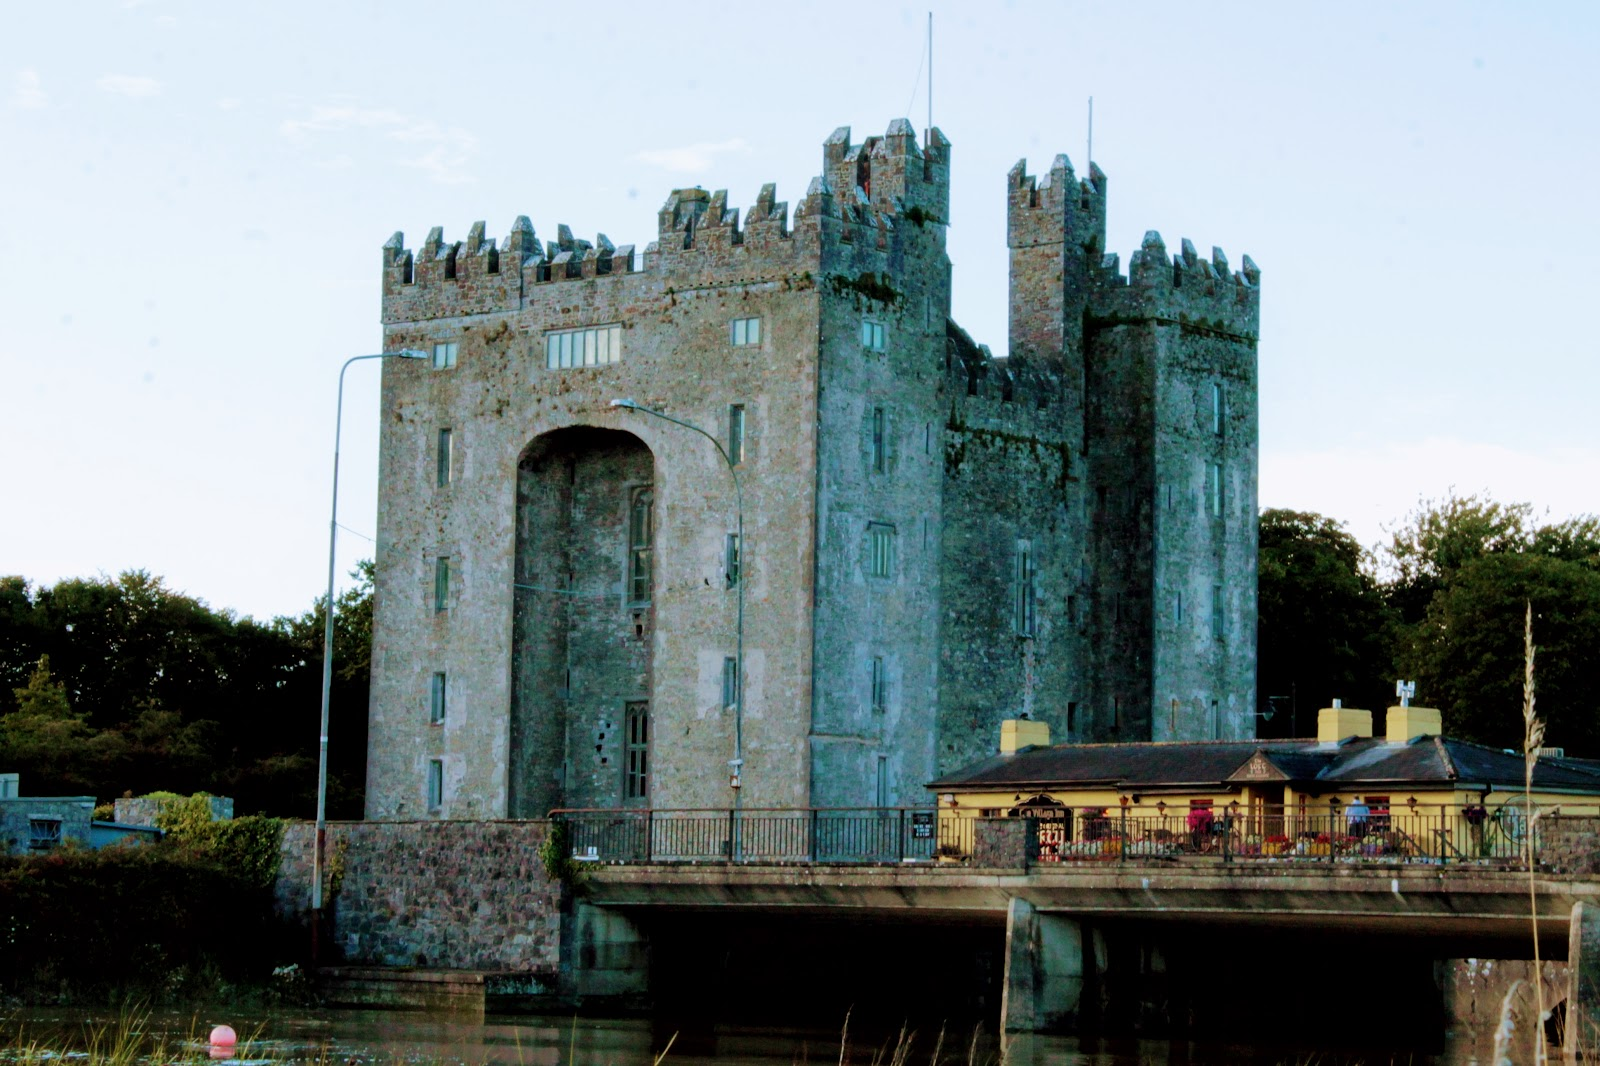 Bunratty Castle, Ireland. www.goodfoodshared.blogspot.com